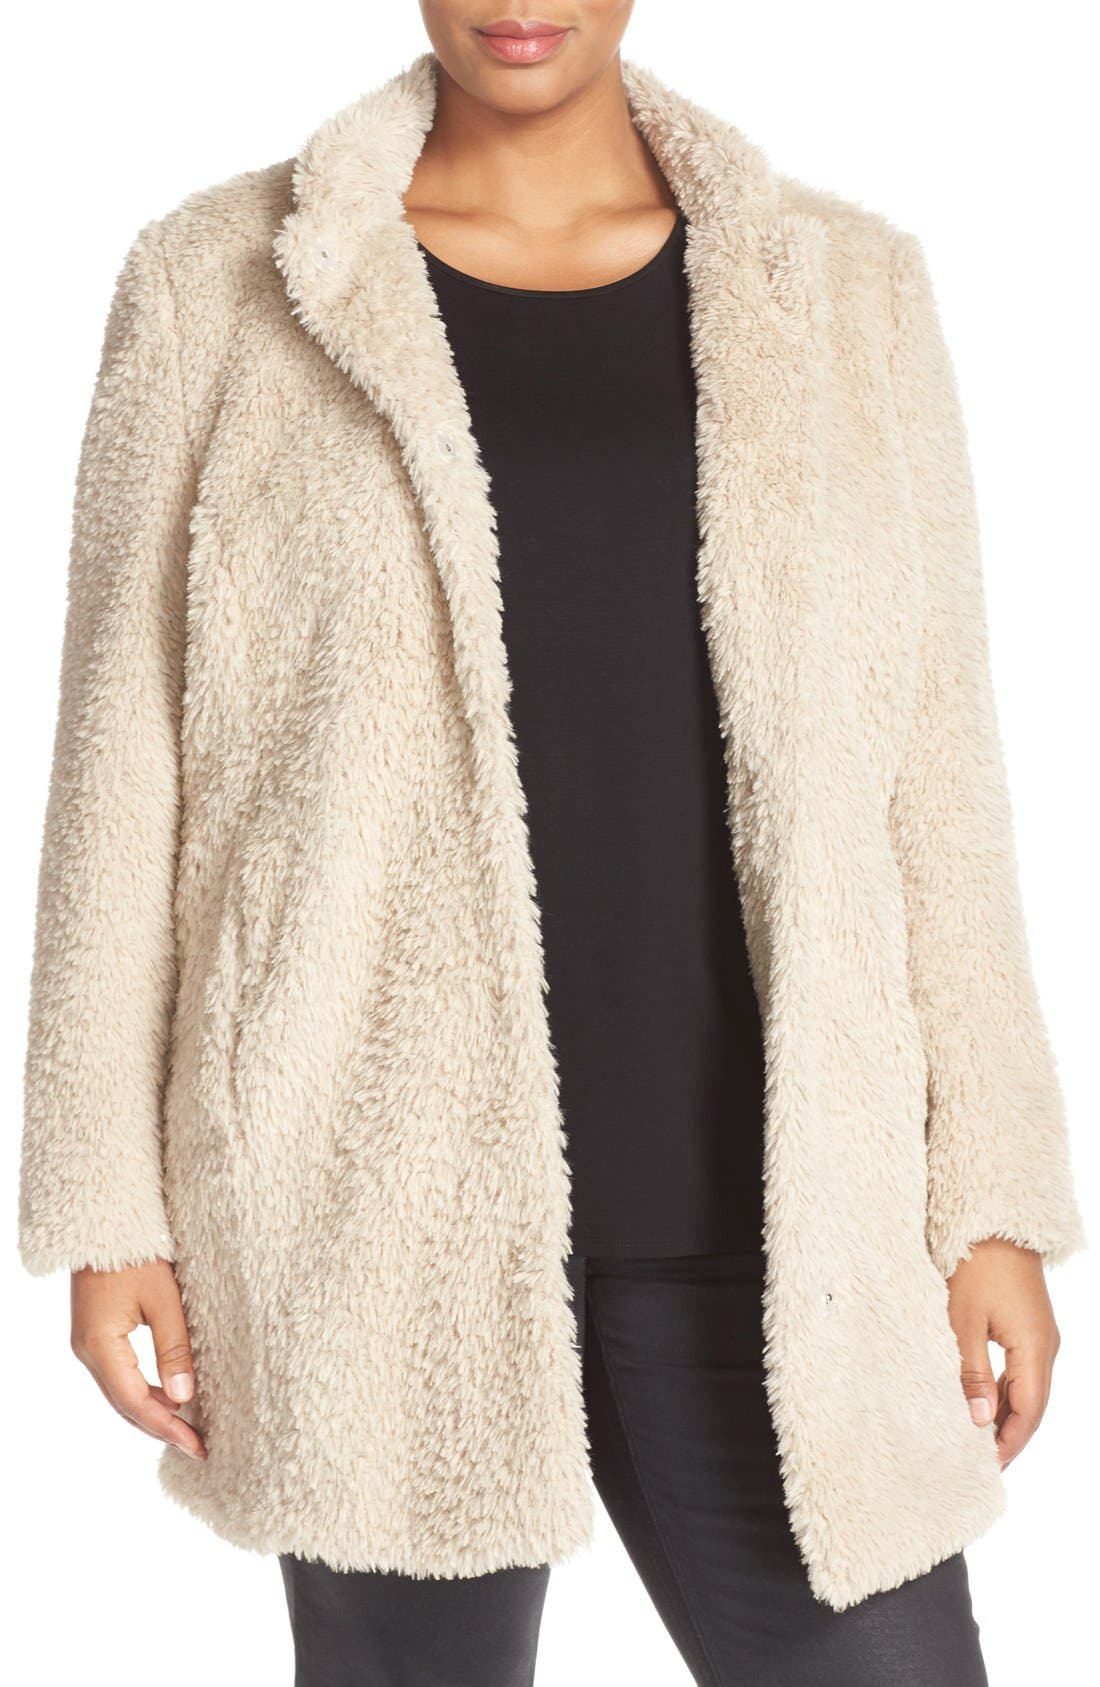 Alternate Image 1 Selected - Kenneth Cole New York 'Original Teddy' Faux Fur Coat (Plus Size)